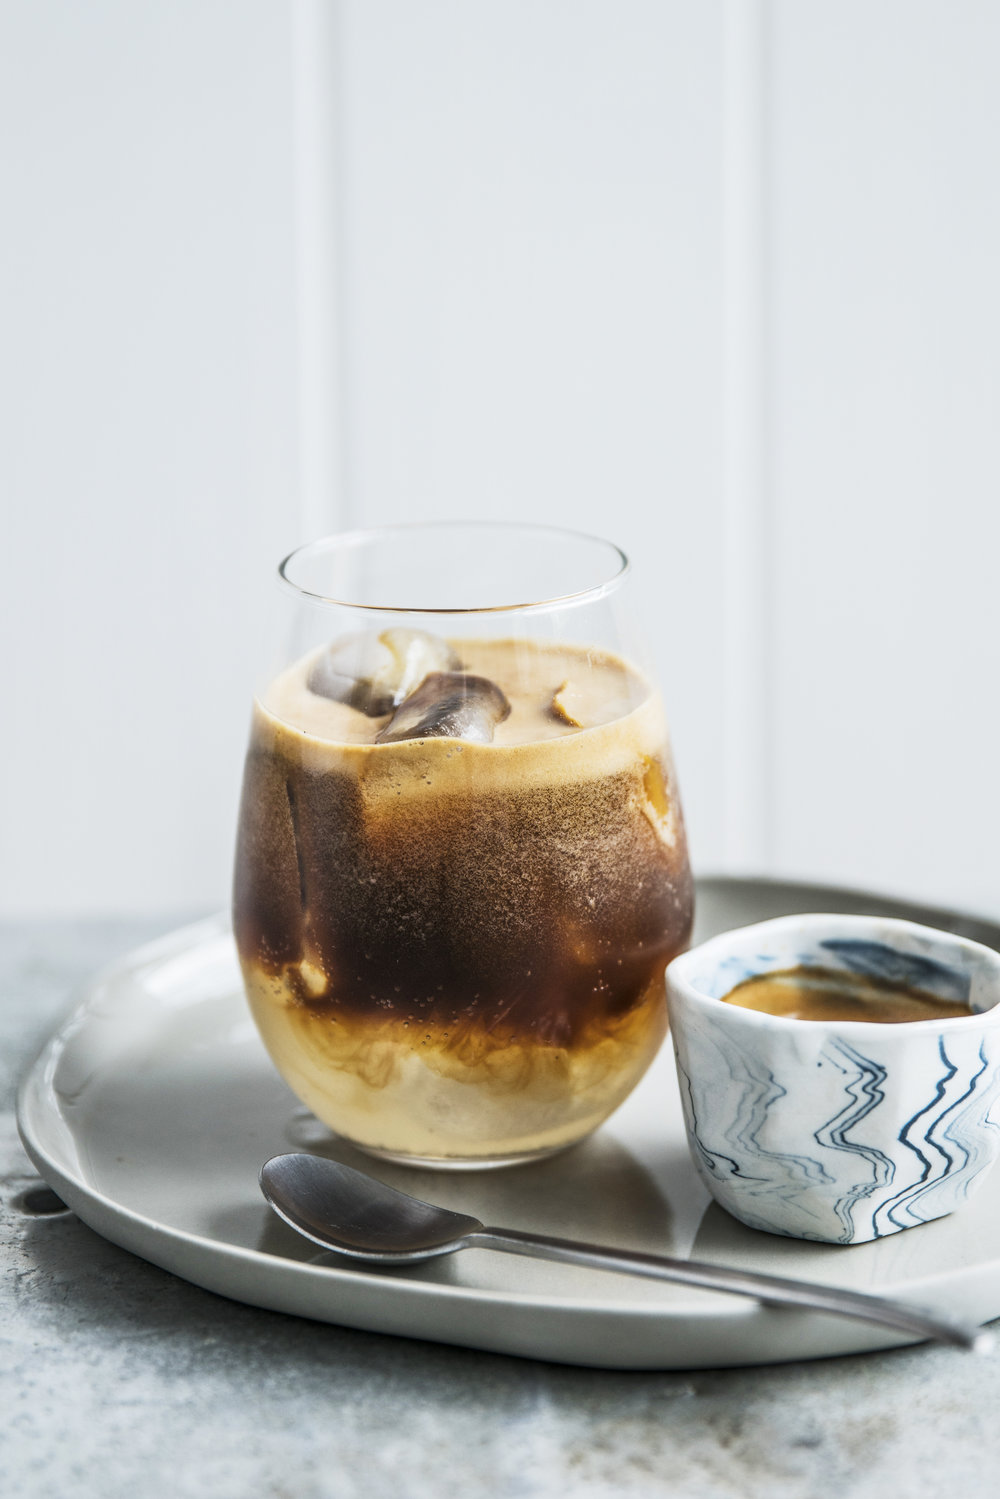 Specialty Coffee - We offer some fun stuff along side the classics, like our Espresso Dark and Stormy with ginger beer, orange and two shots of espresso.